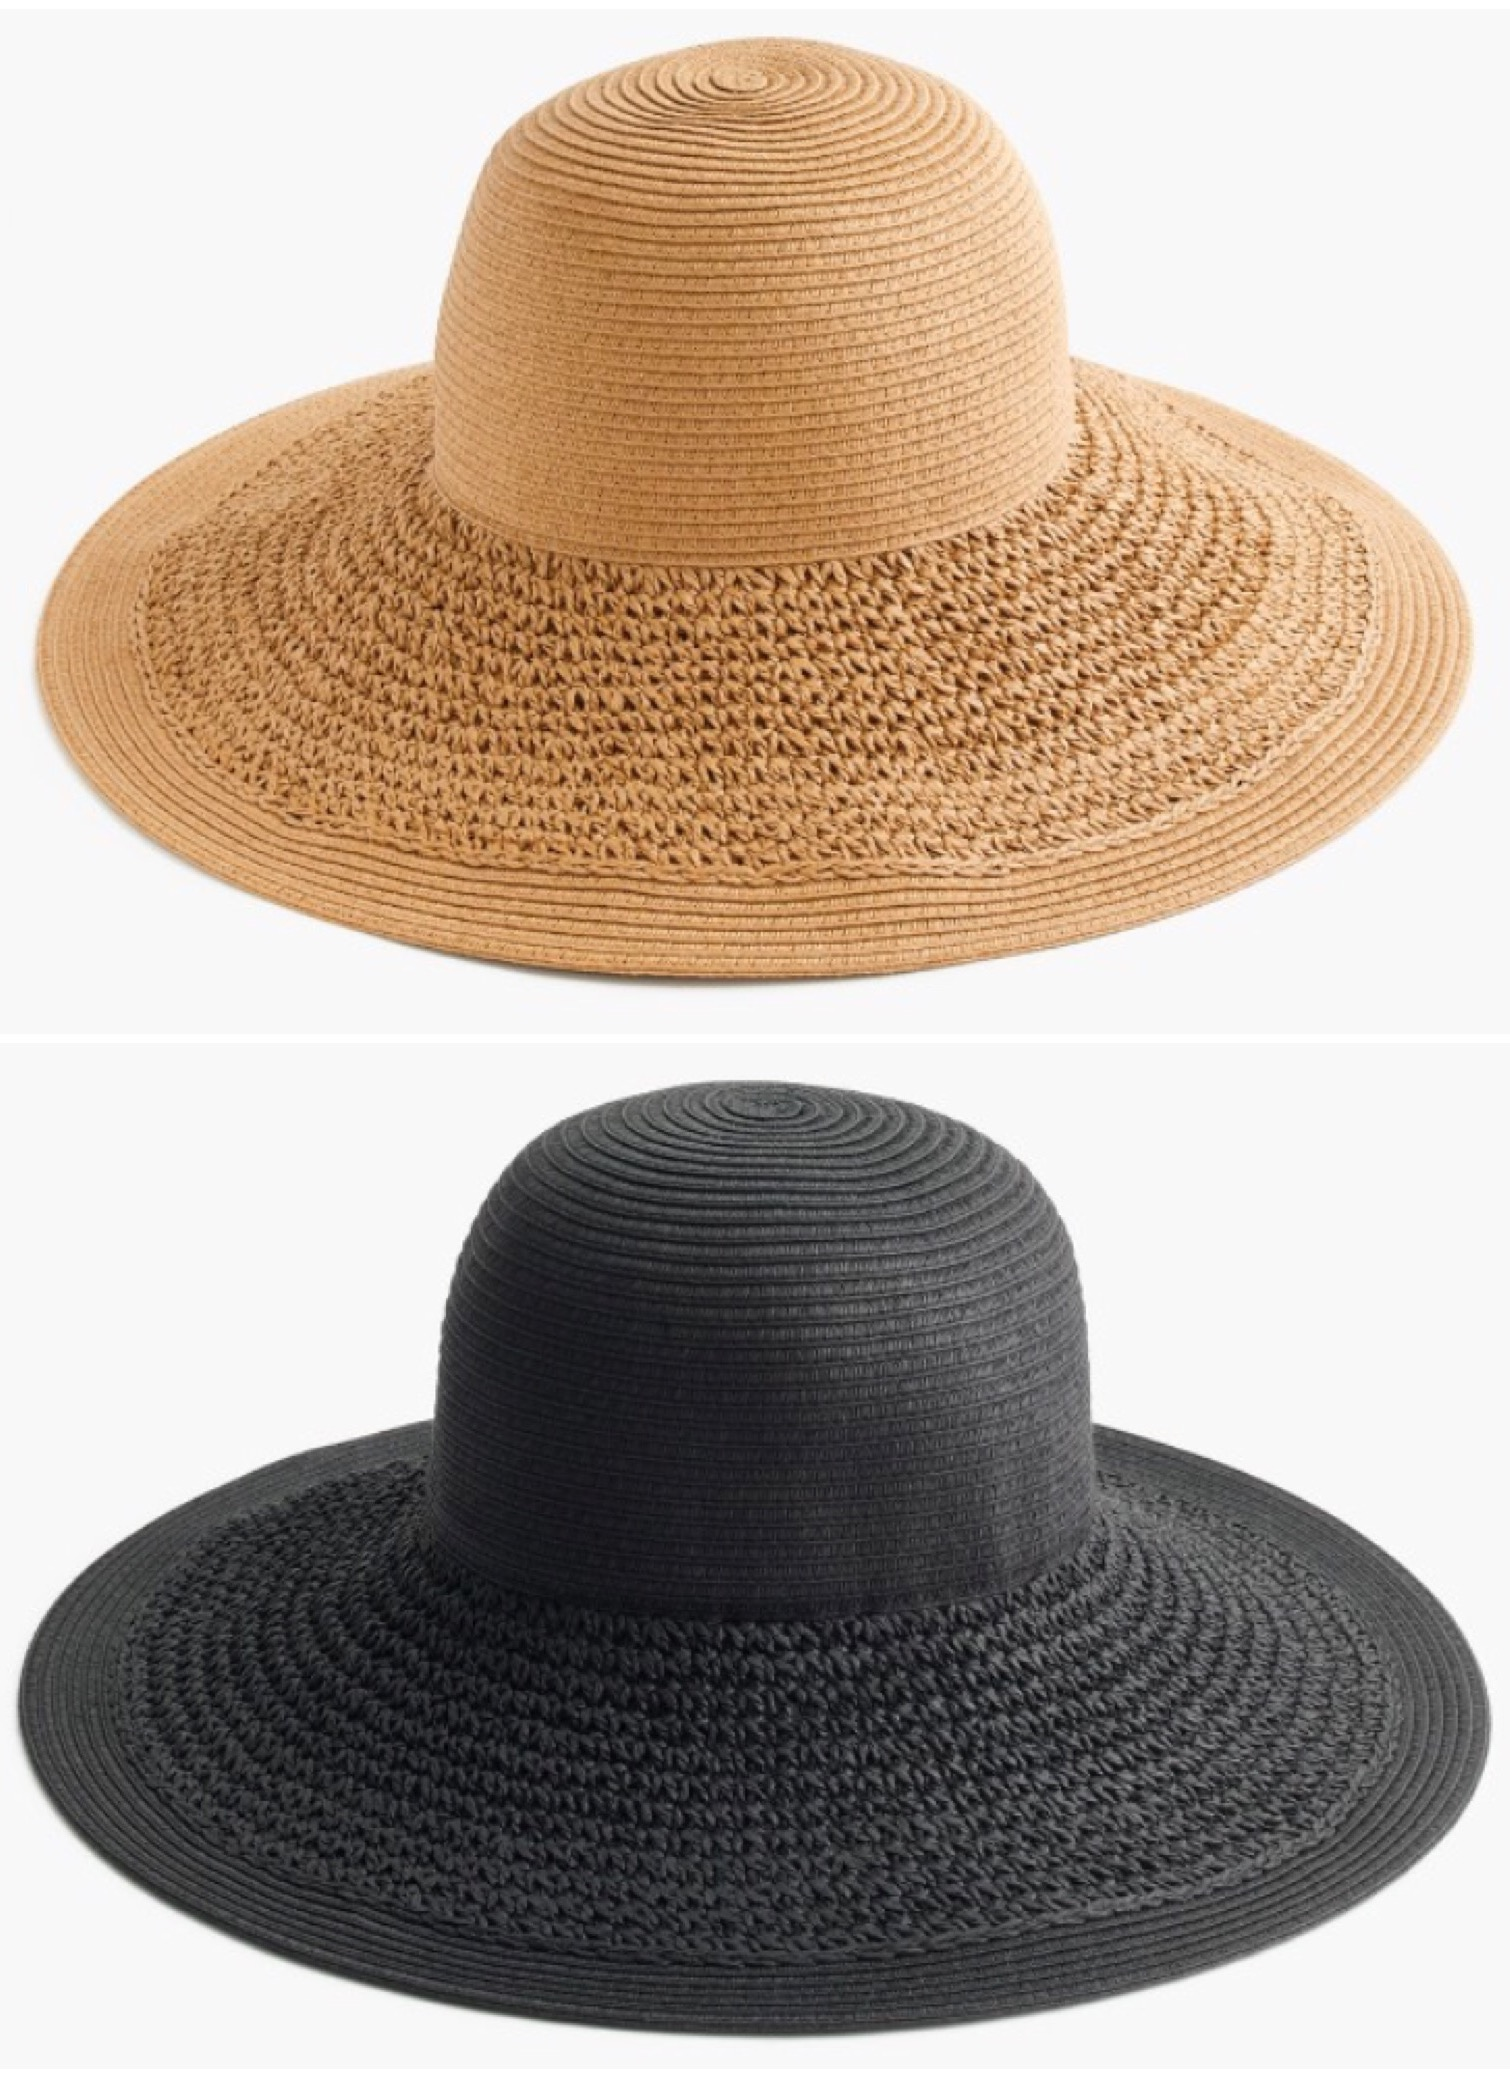 59a2fcd27e456 J.Crew textured straw hat in dusty dune   black.